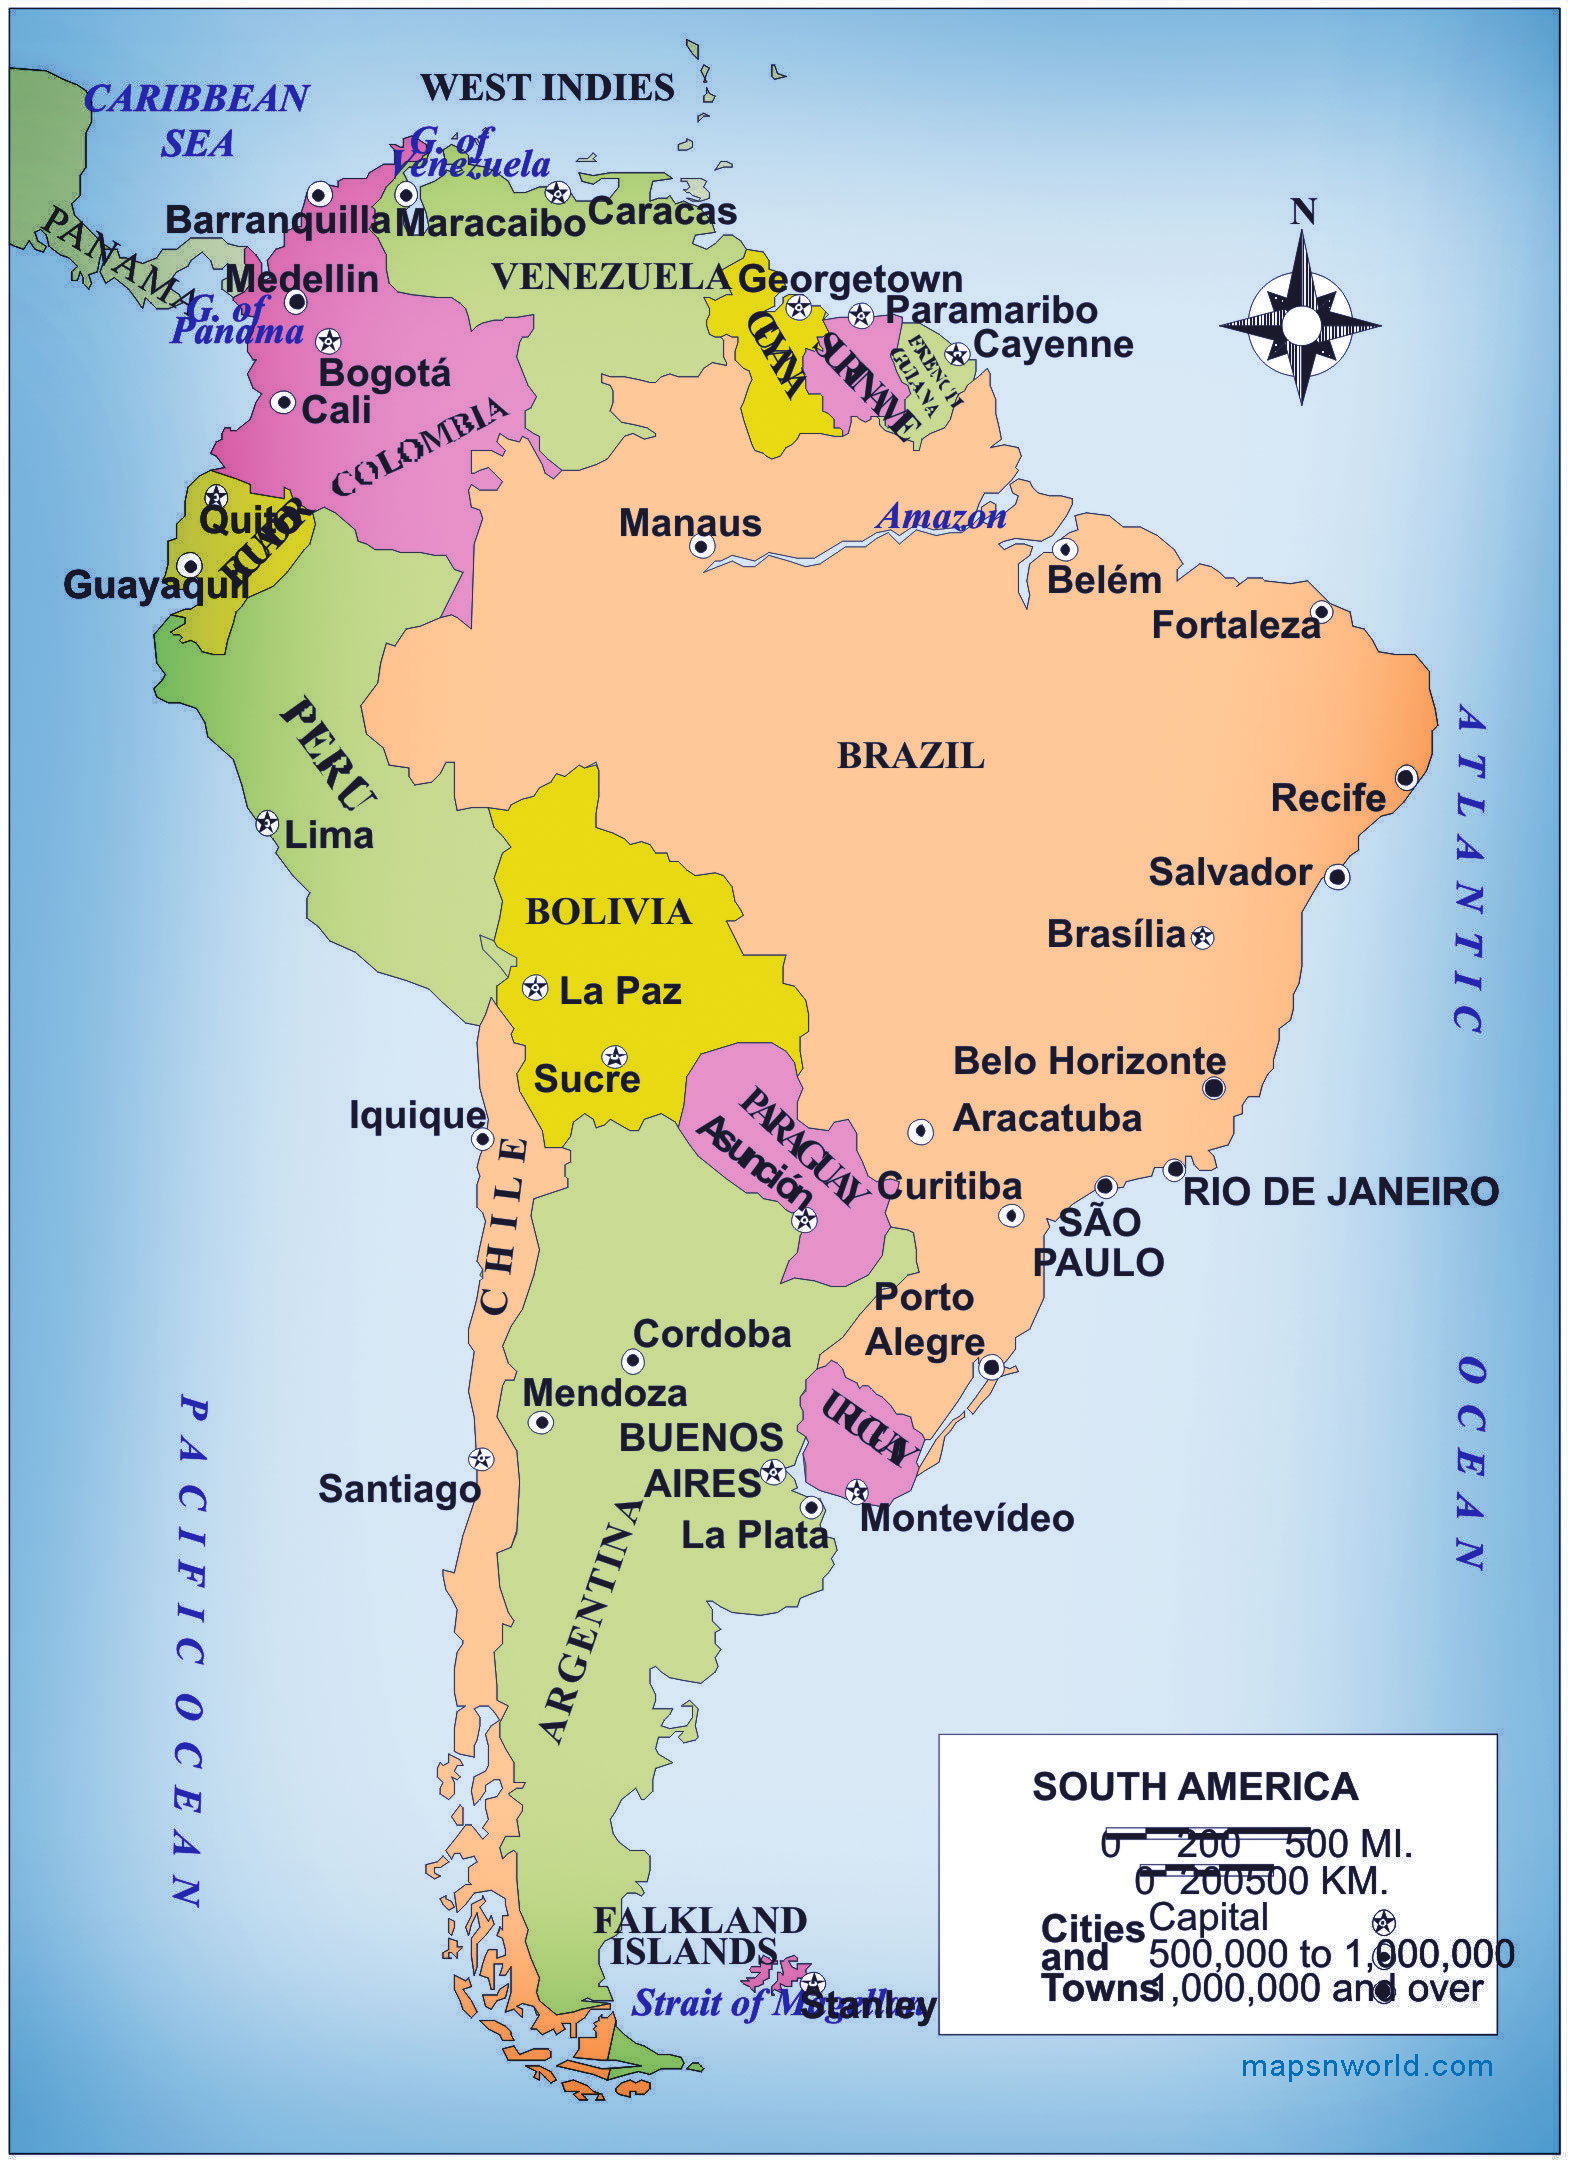 South America map in bigger size